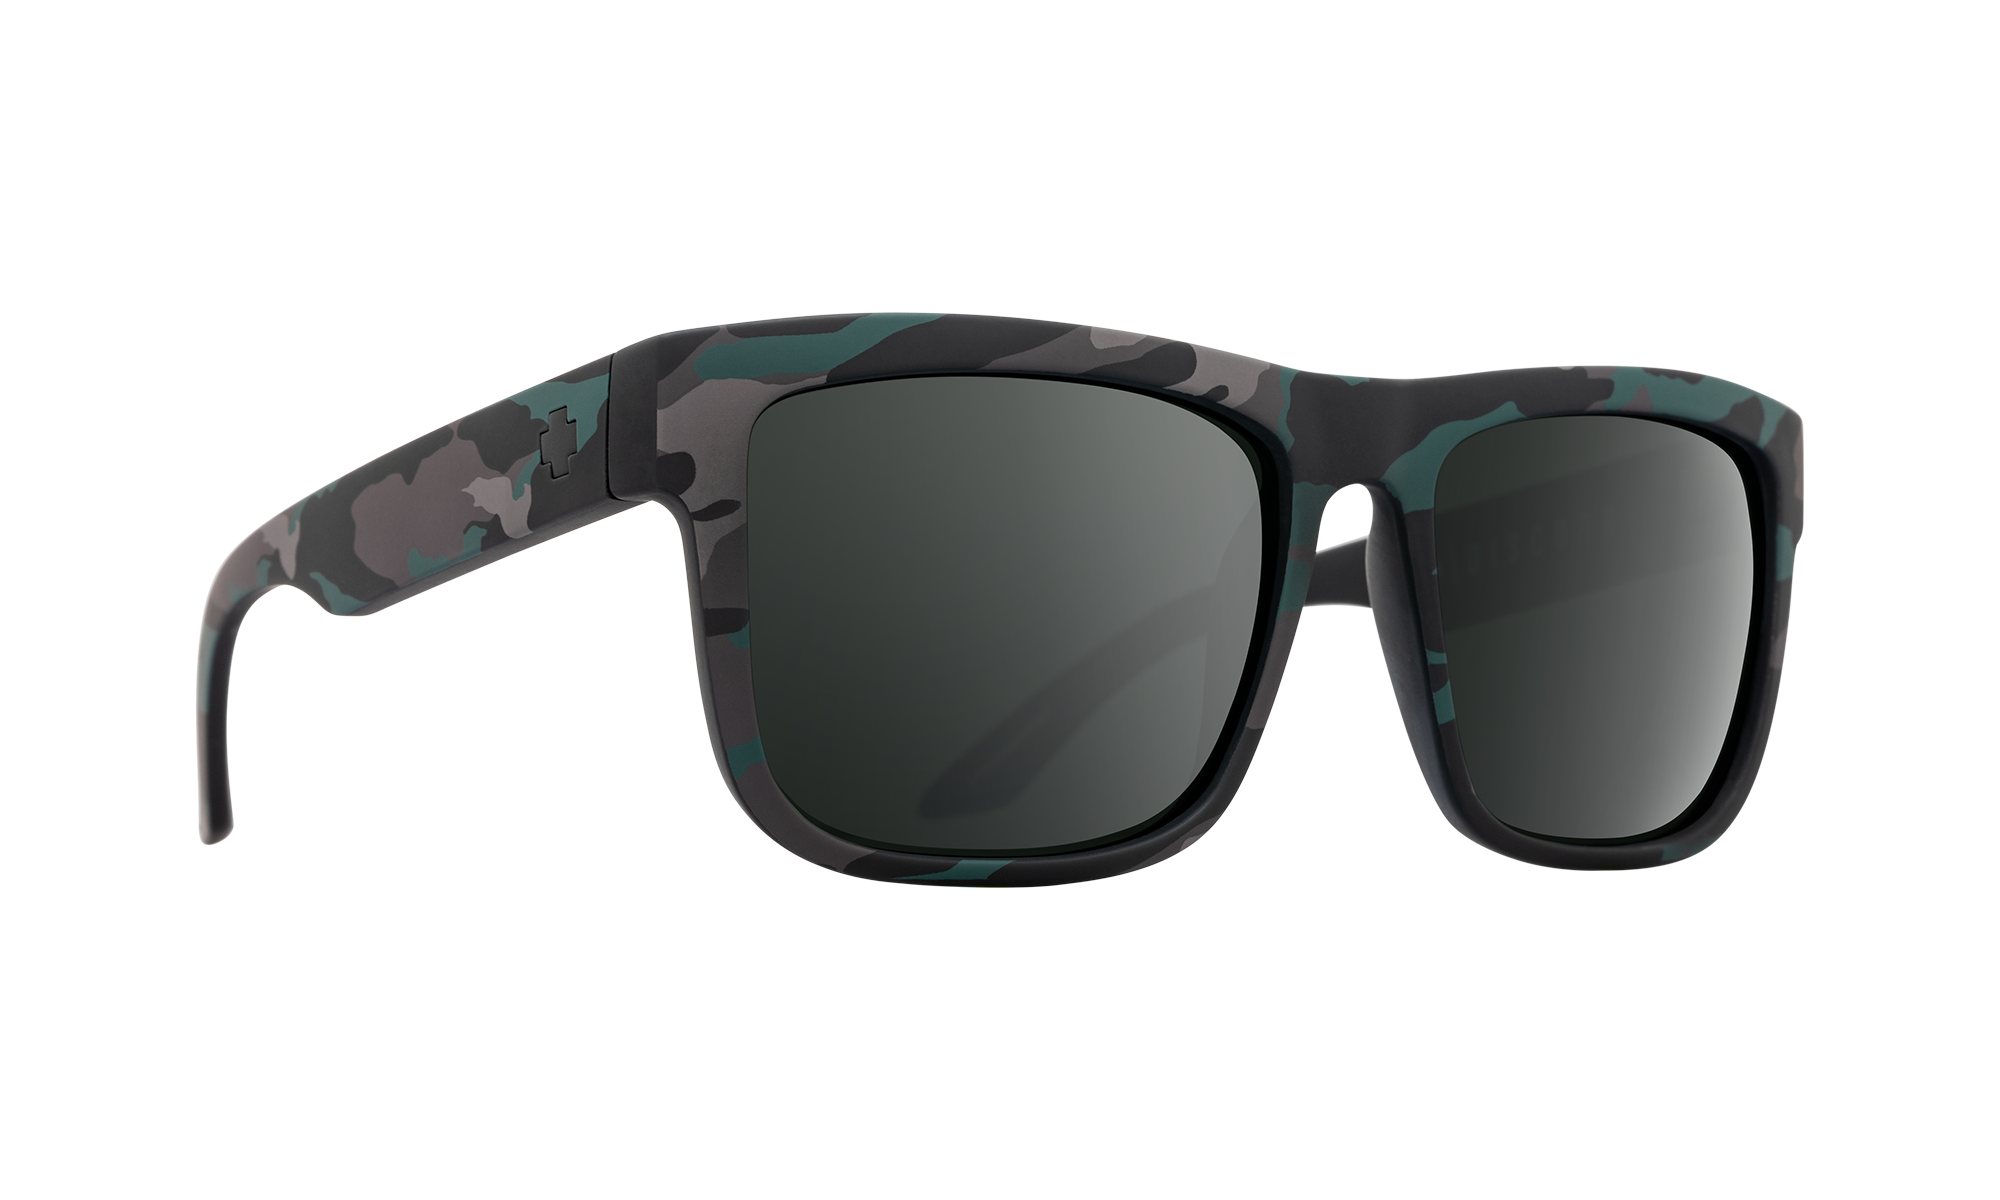 itemDesc Discord Stealth Camo - HD Plus Gray Green w/ Black Spectra Mirror is not available for this combination